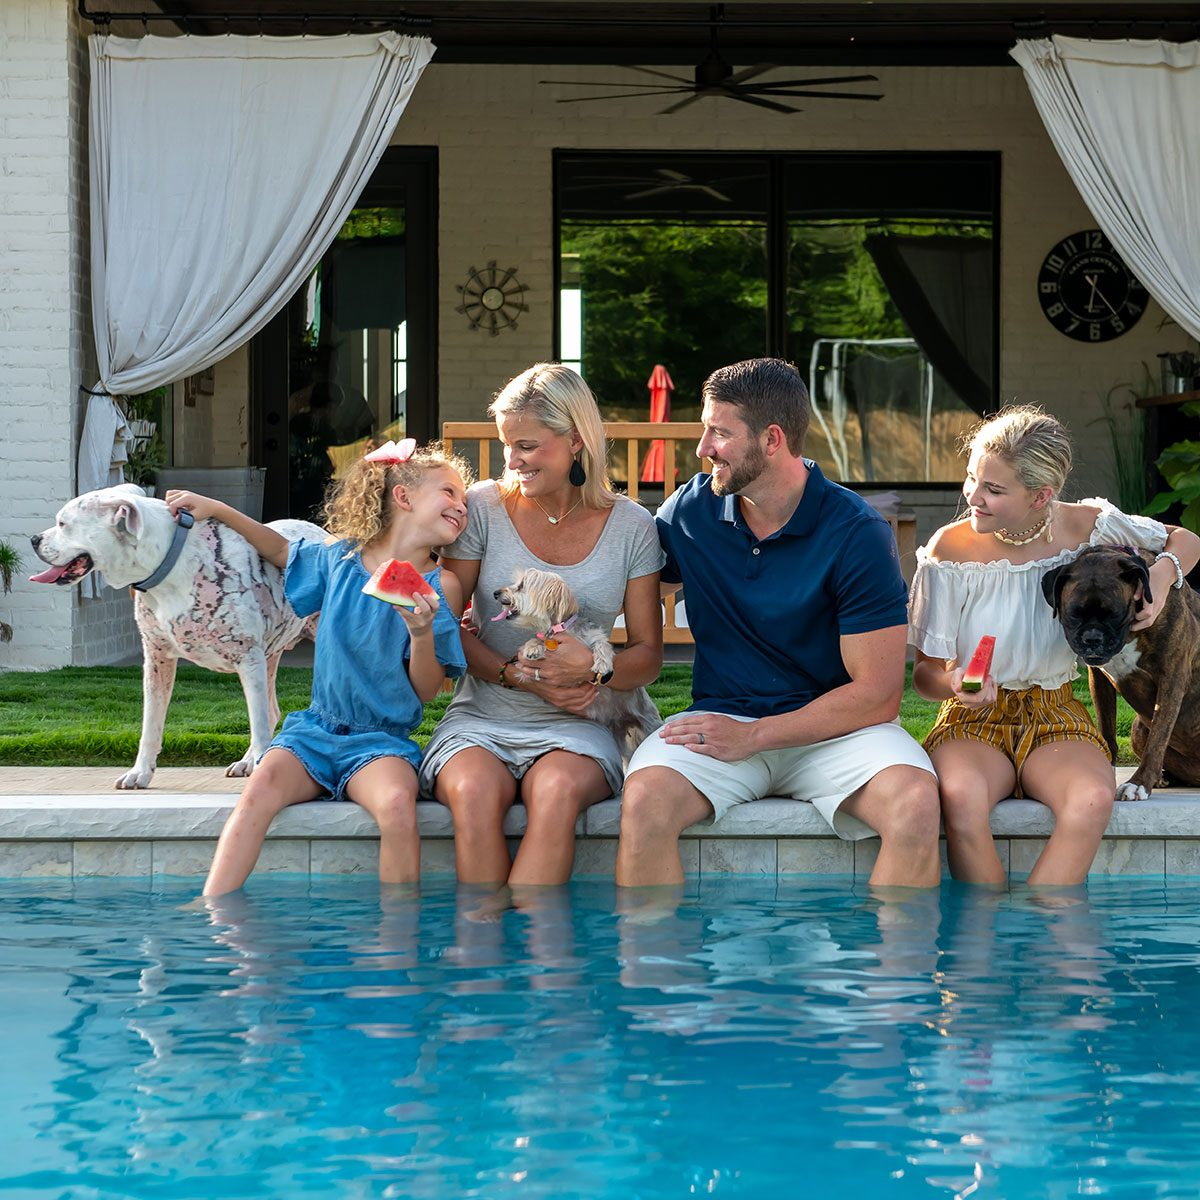 Family enjoying themselves by the pool